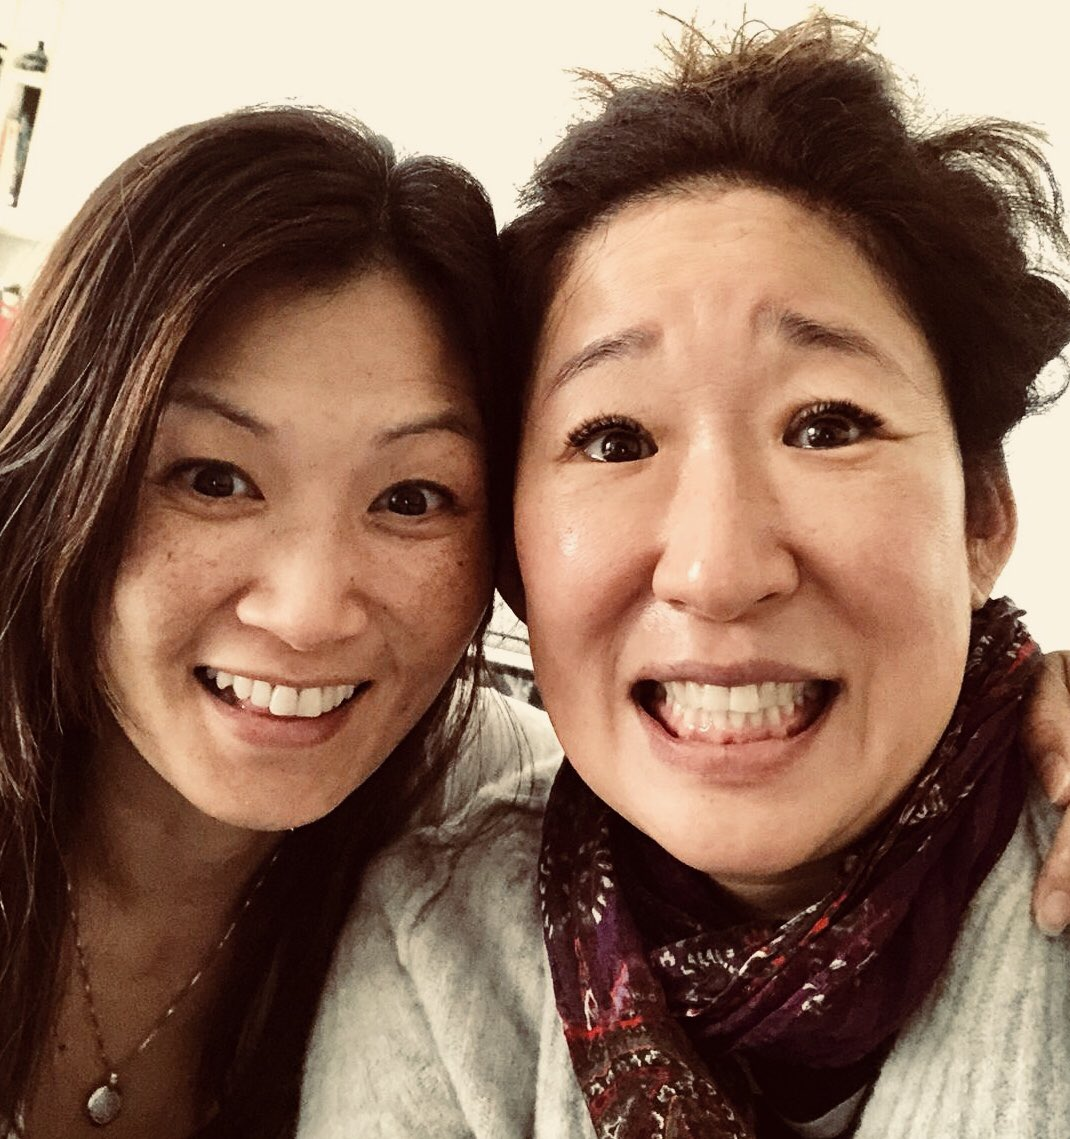 Omg wtf?? This is me hearing about Emmy nom w/ fellow sister @michellekrusiec - my expression is kinda ..what? https://t.co/1Mwlj2FETc